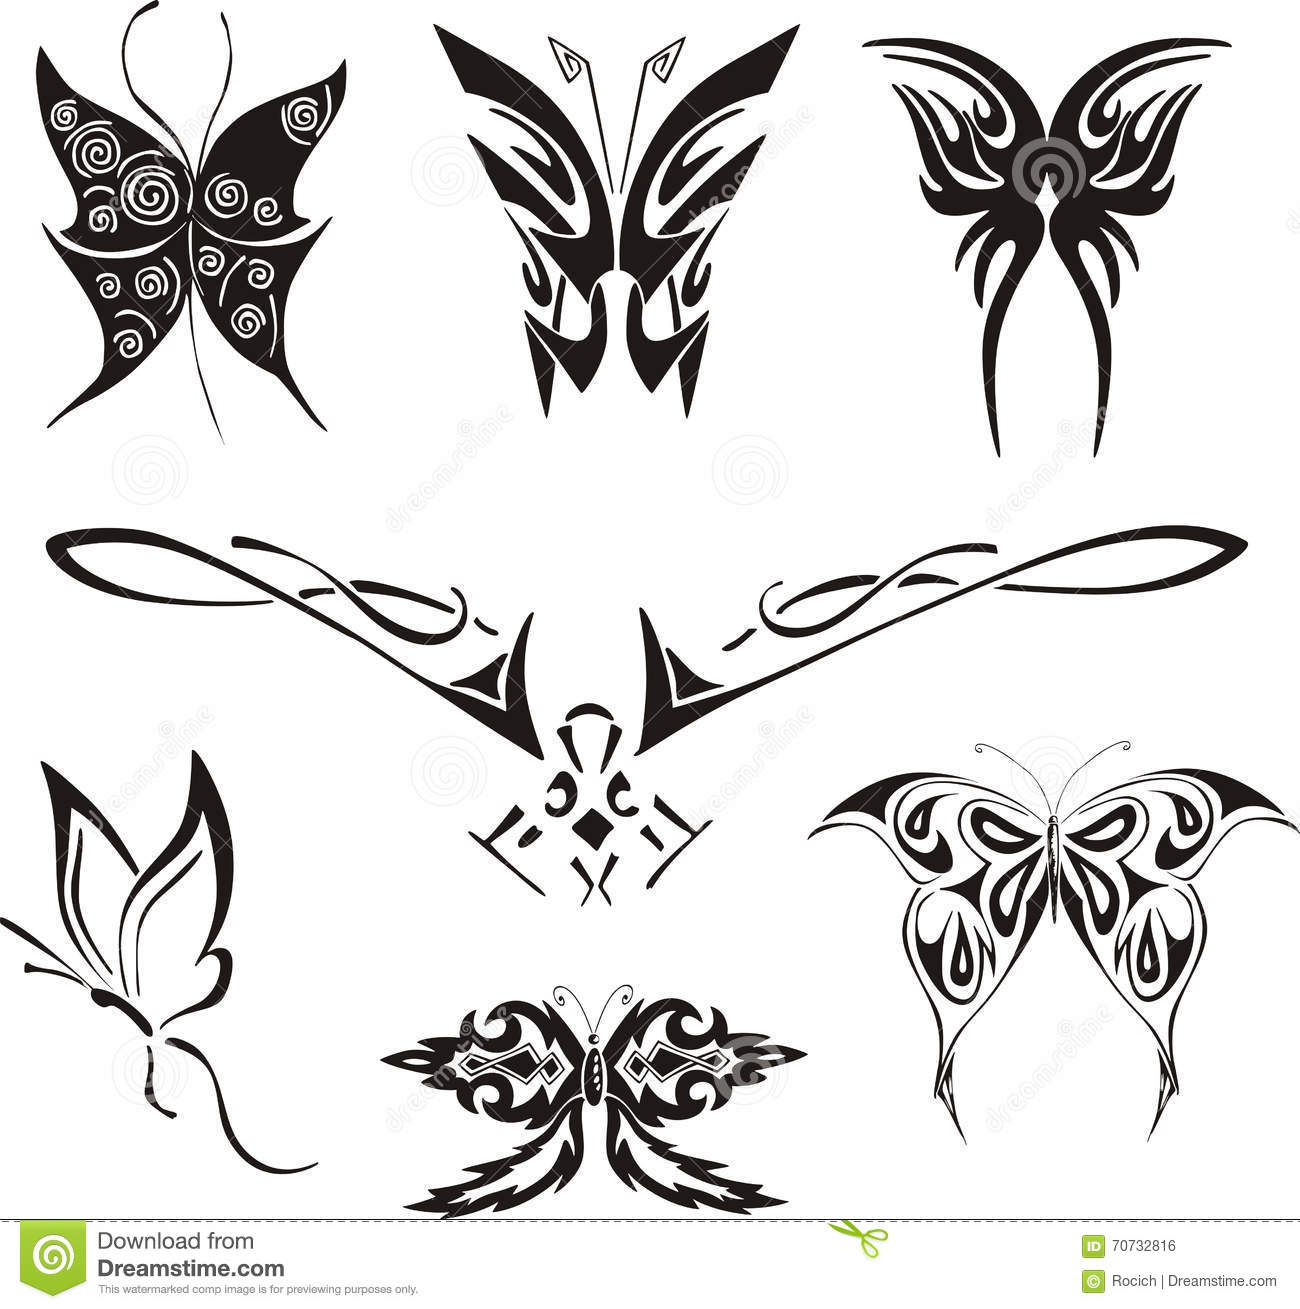 73584dcf401e7 Butterflies and Moths Tattoos Set. Black and white vector illustrations.